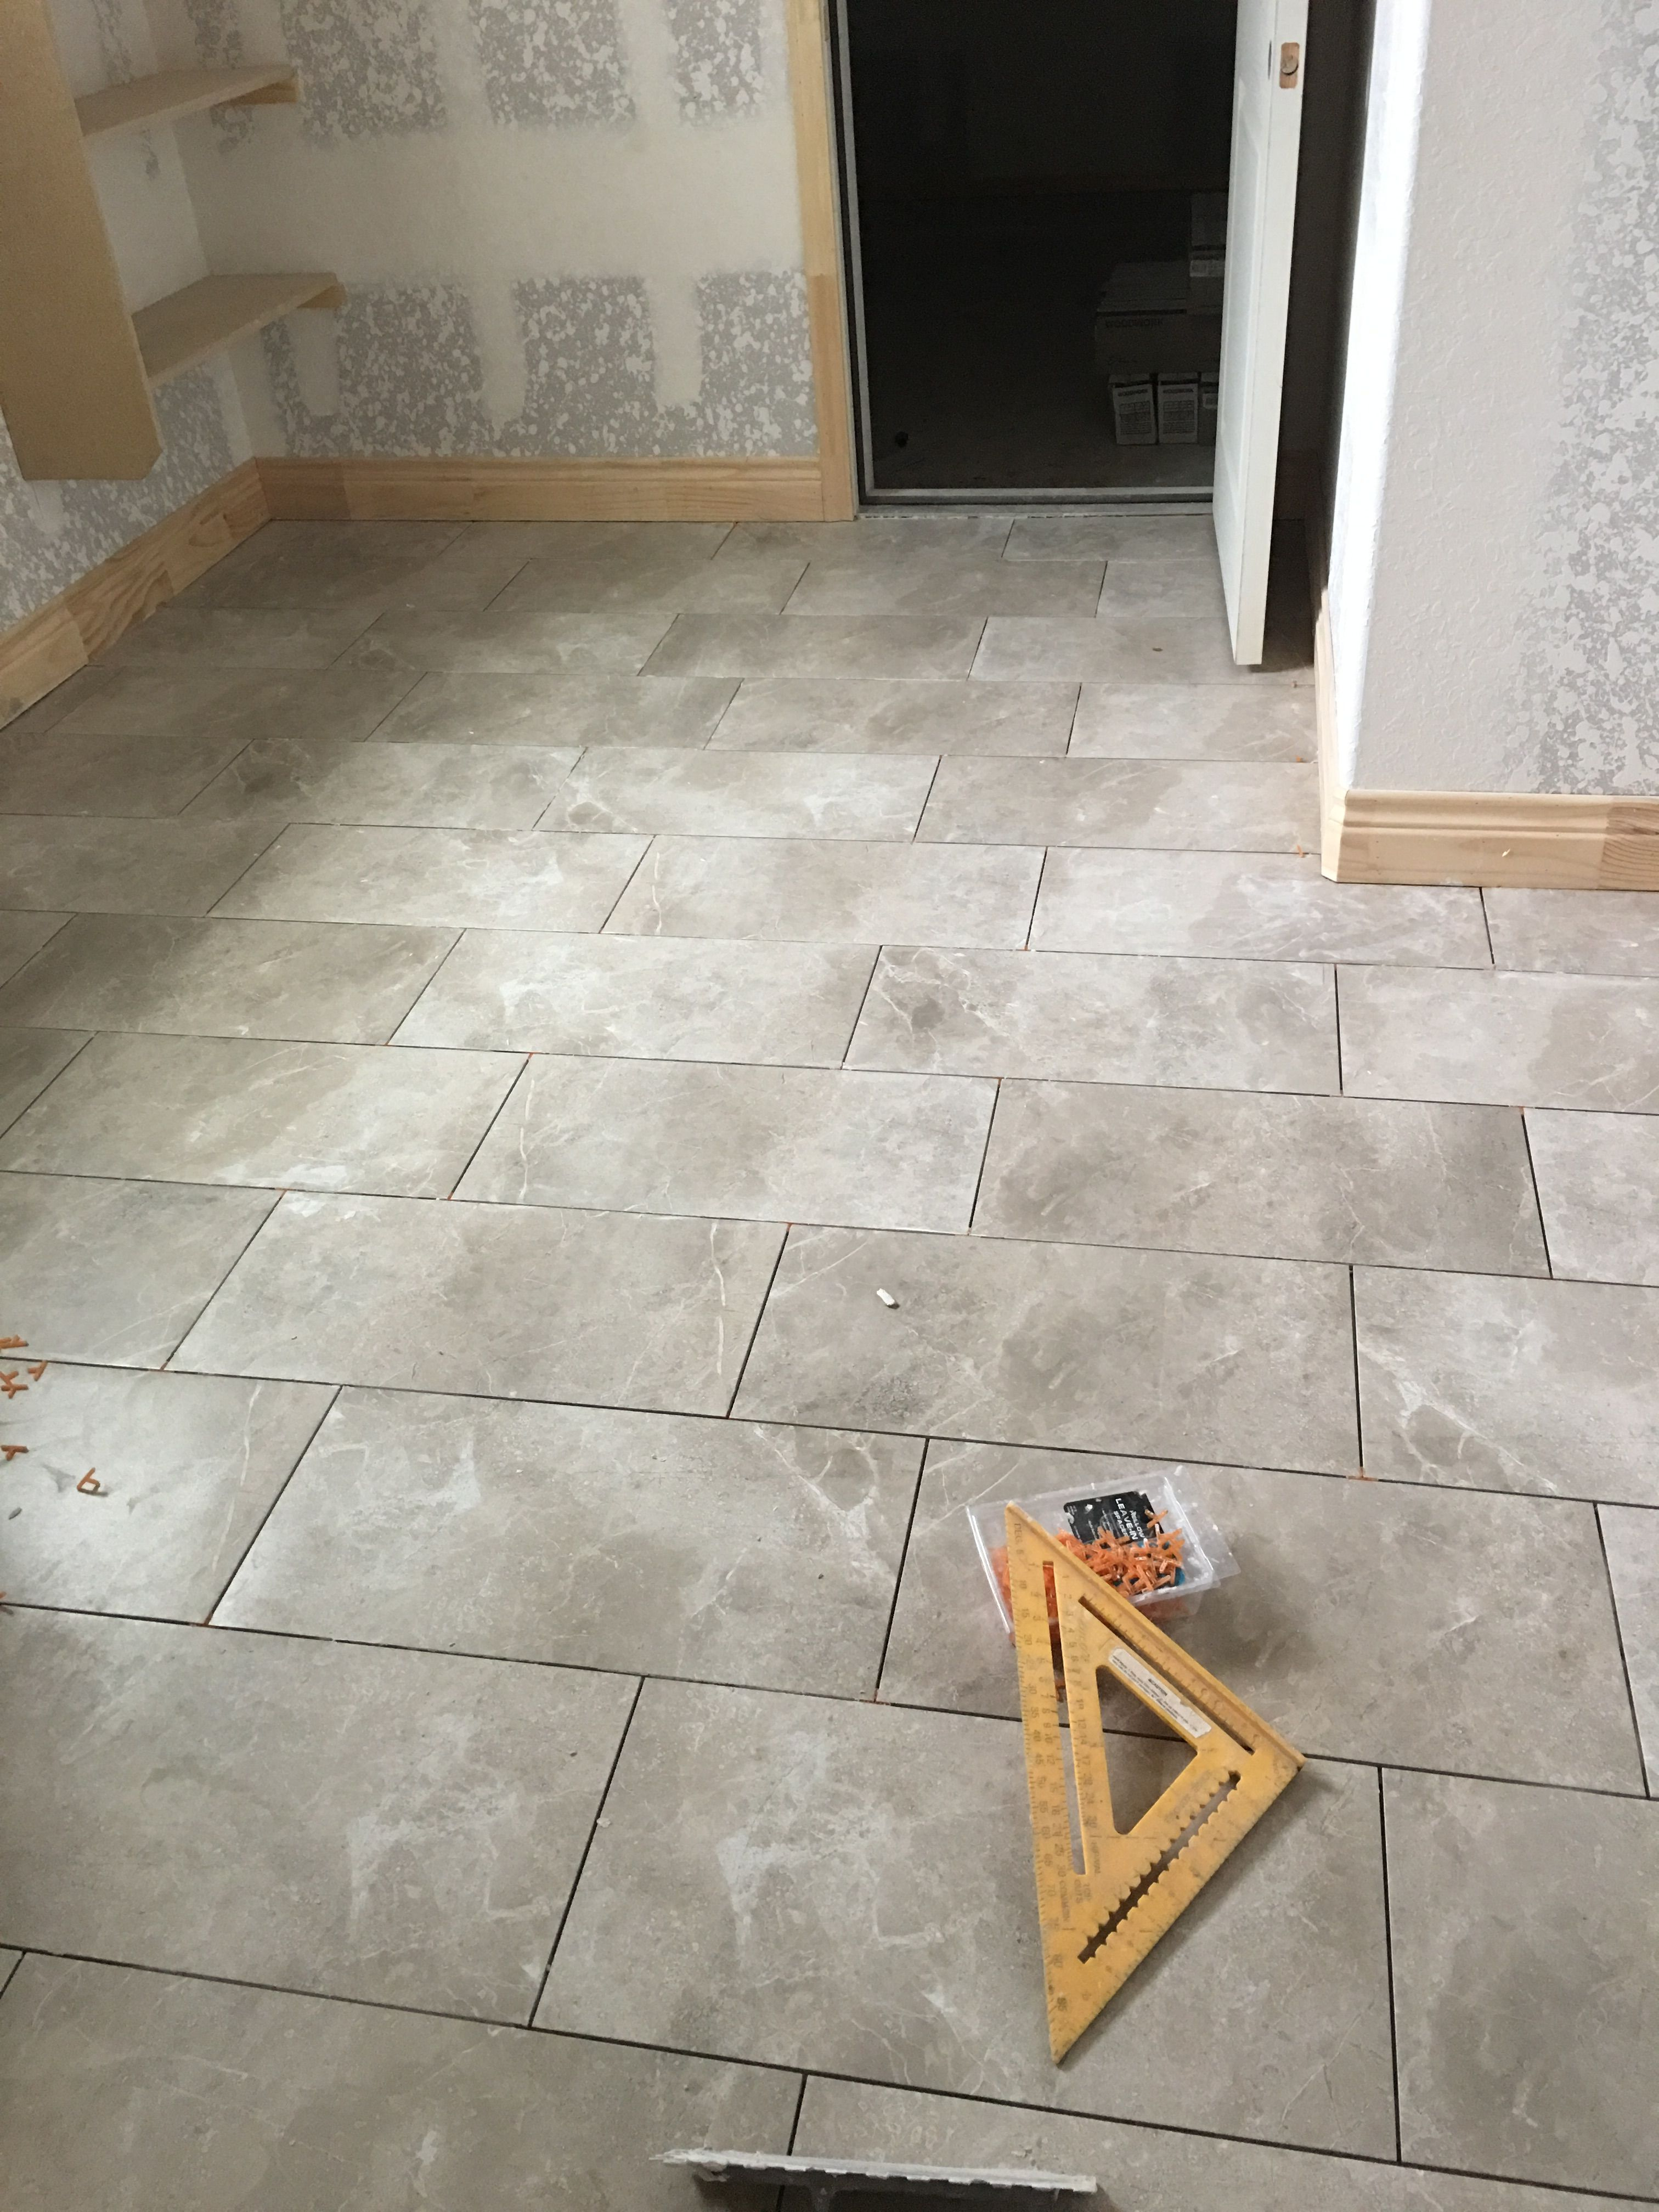 Emser Realm Nation 12 X 24 W 1 8 Grout Lines Currently Ungrouted But Will Be Texrite Chromaflex Canvas House Flooring Emser Flooring